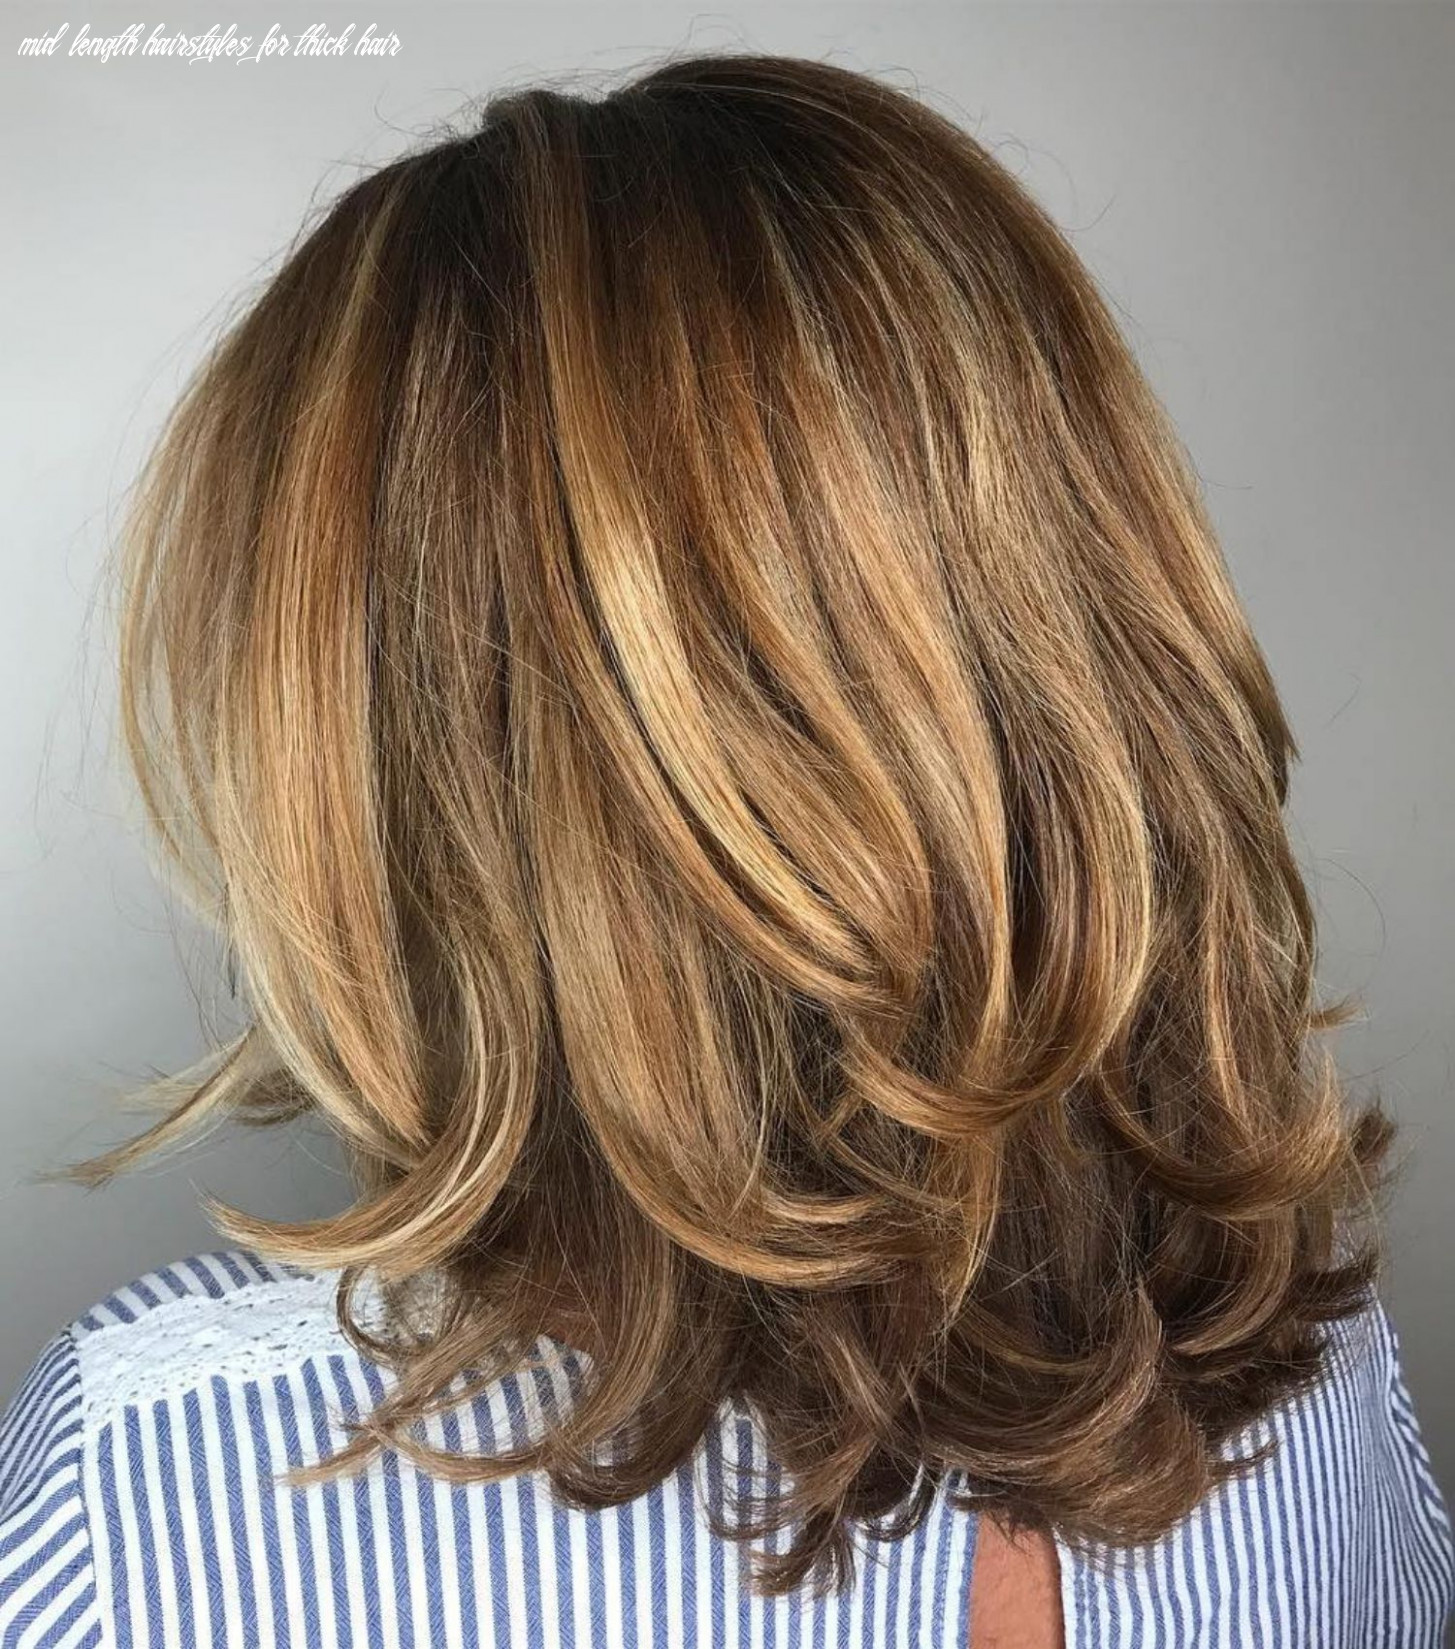 10 modern haircuts for women over 10 with extra zing | medium hair